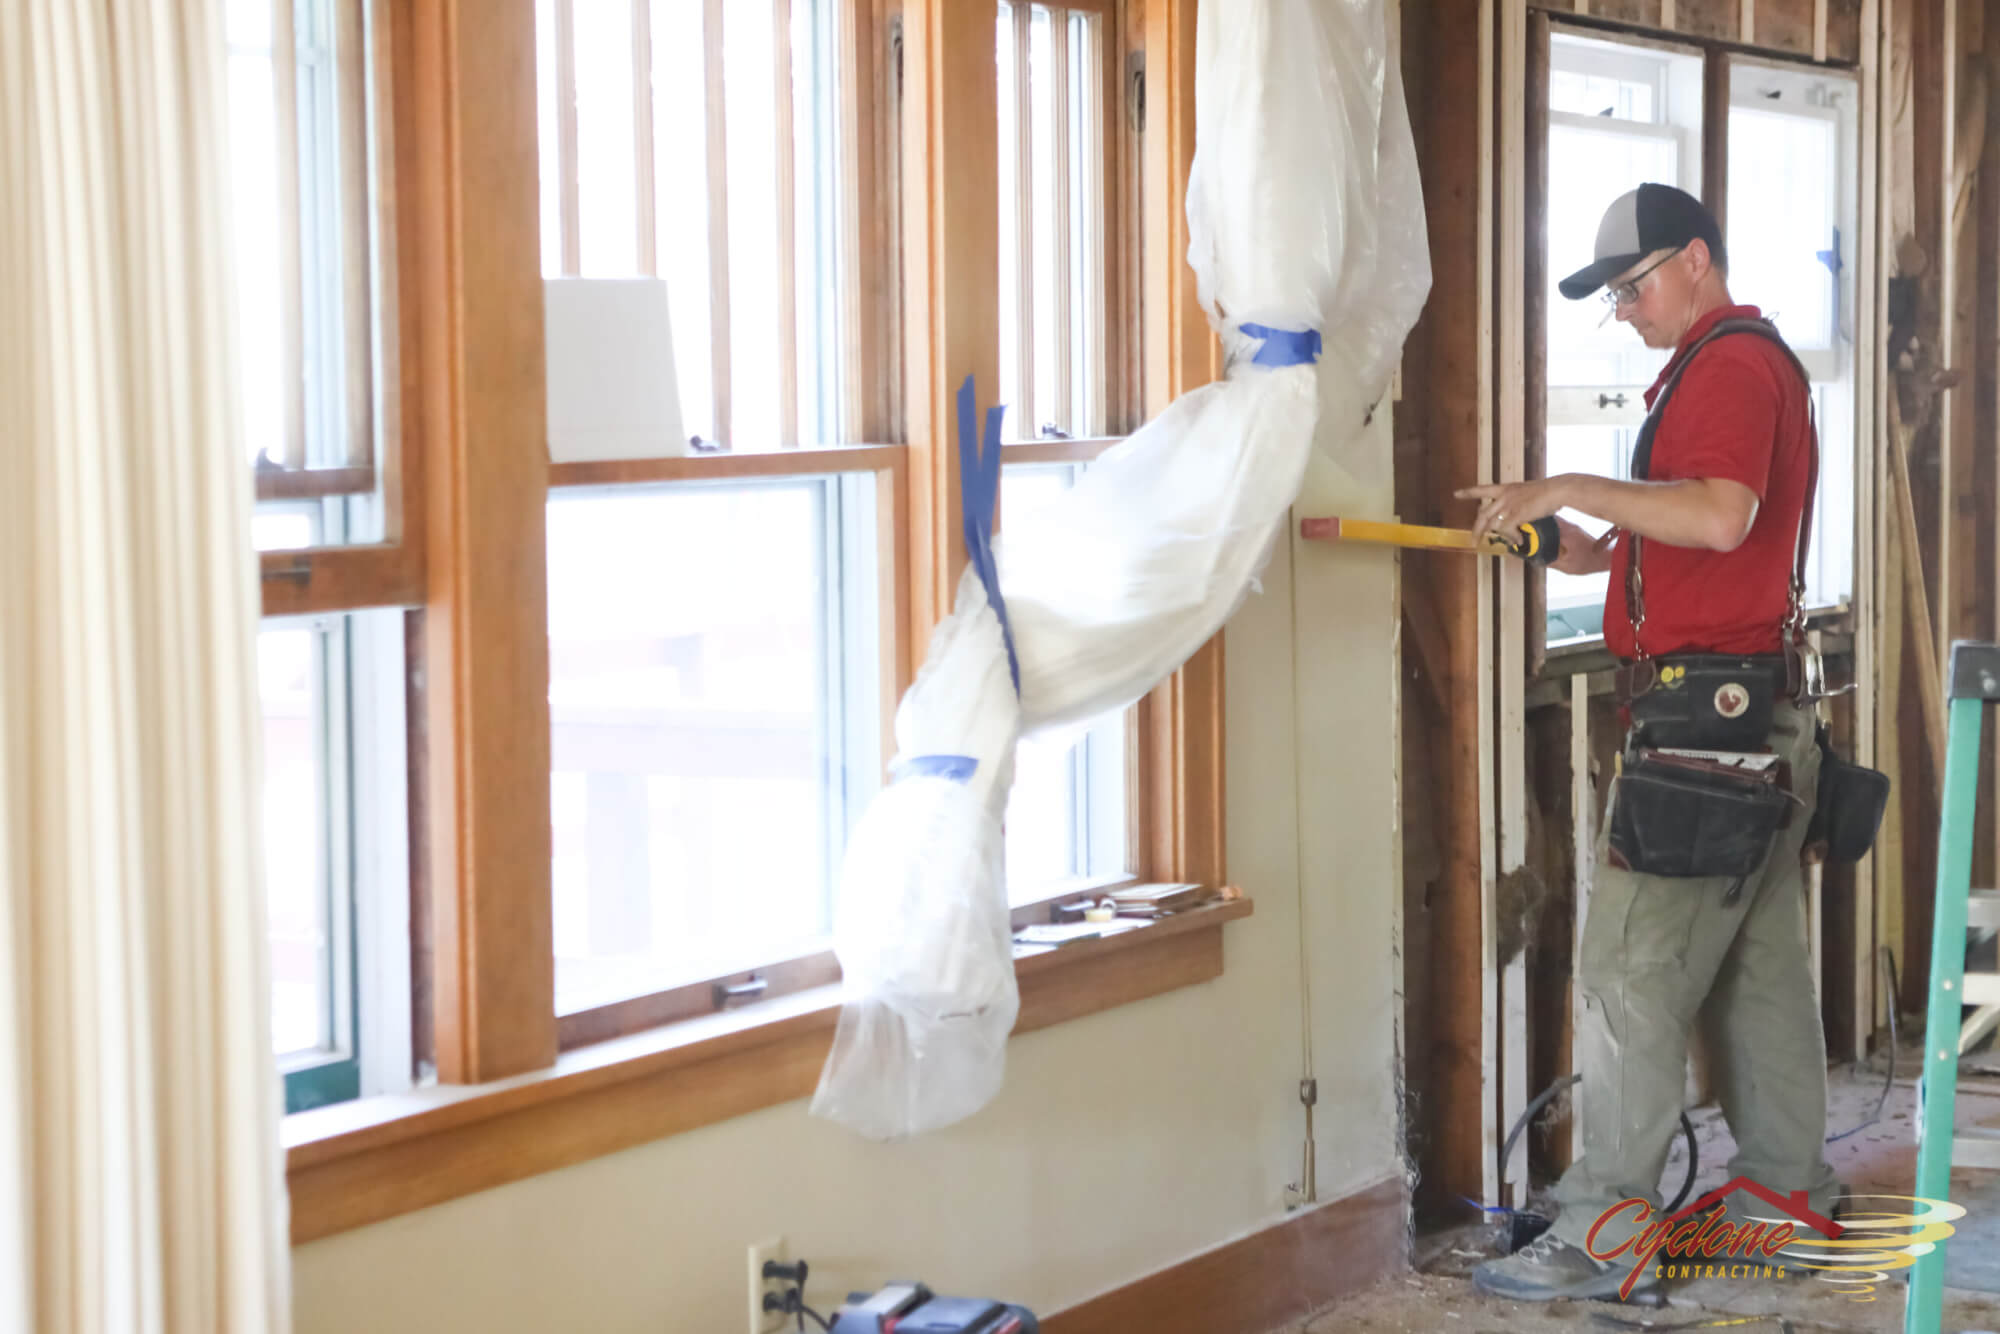 A Cyclone Contracting Remodeling Technician Remodels A Home in Ames, IA